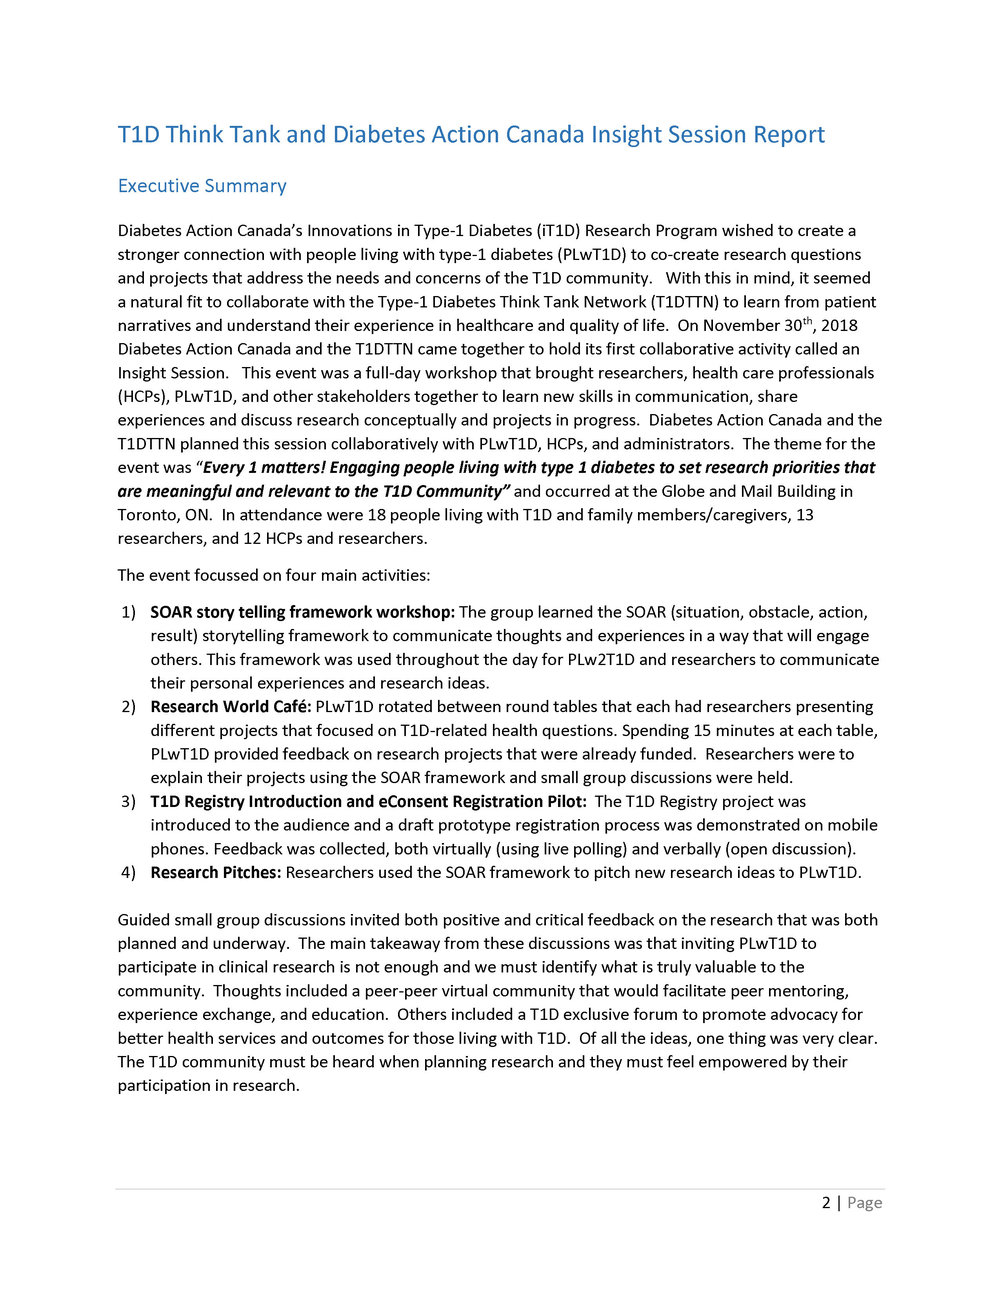 T1D Think Tank and Diabetes Action Canada Insight Session Report FINAL_Page_3.jpg